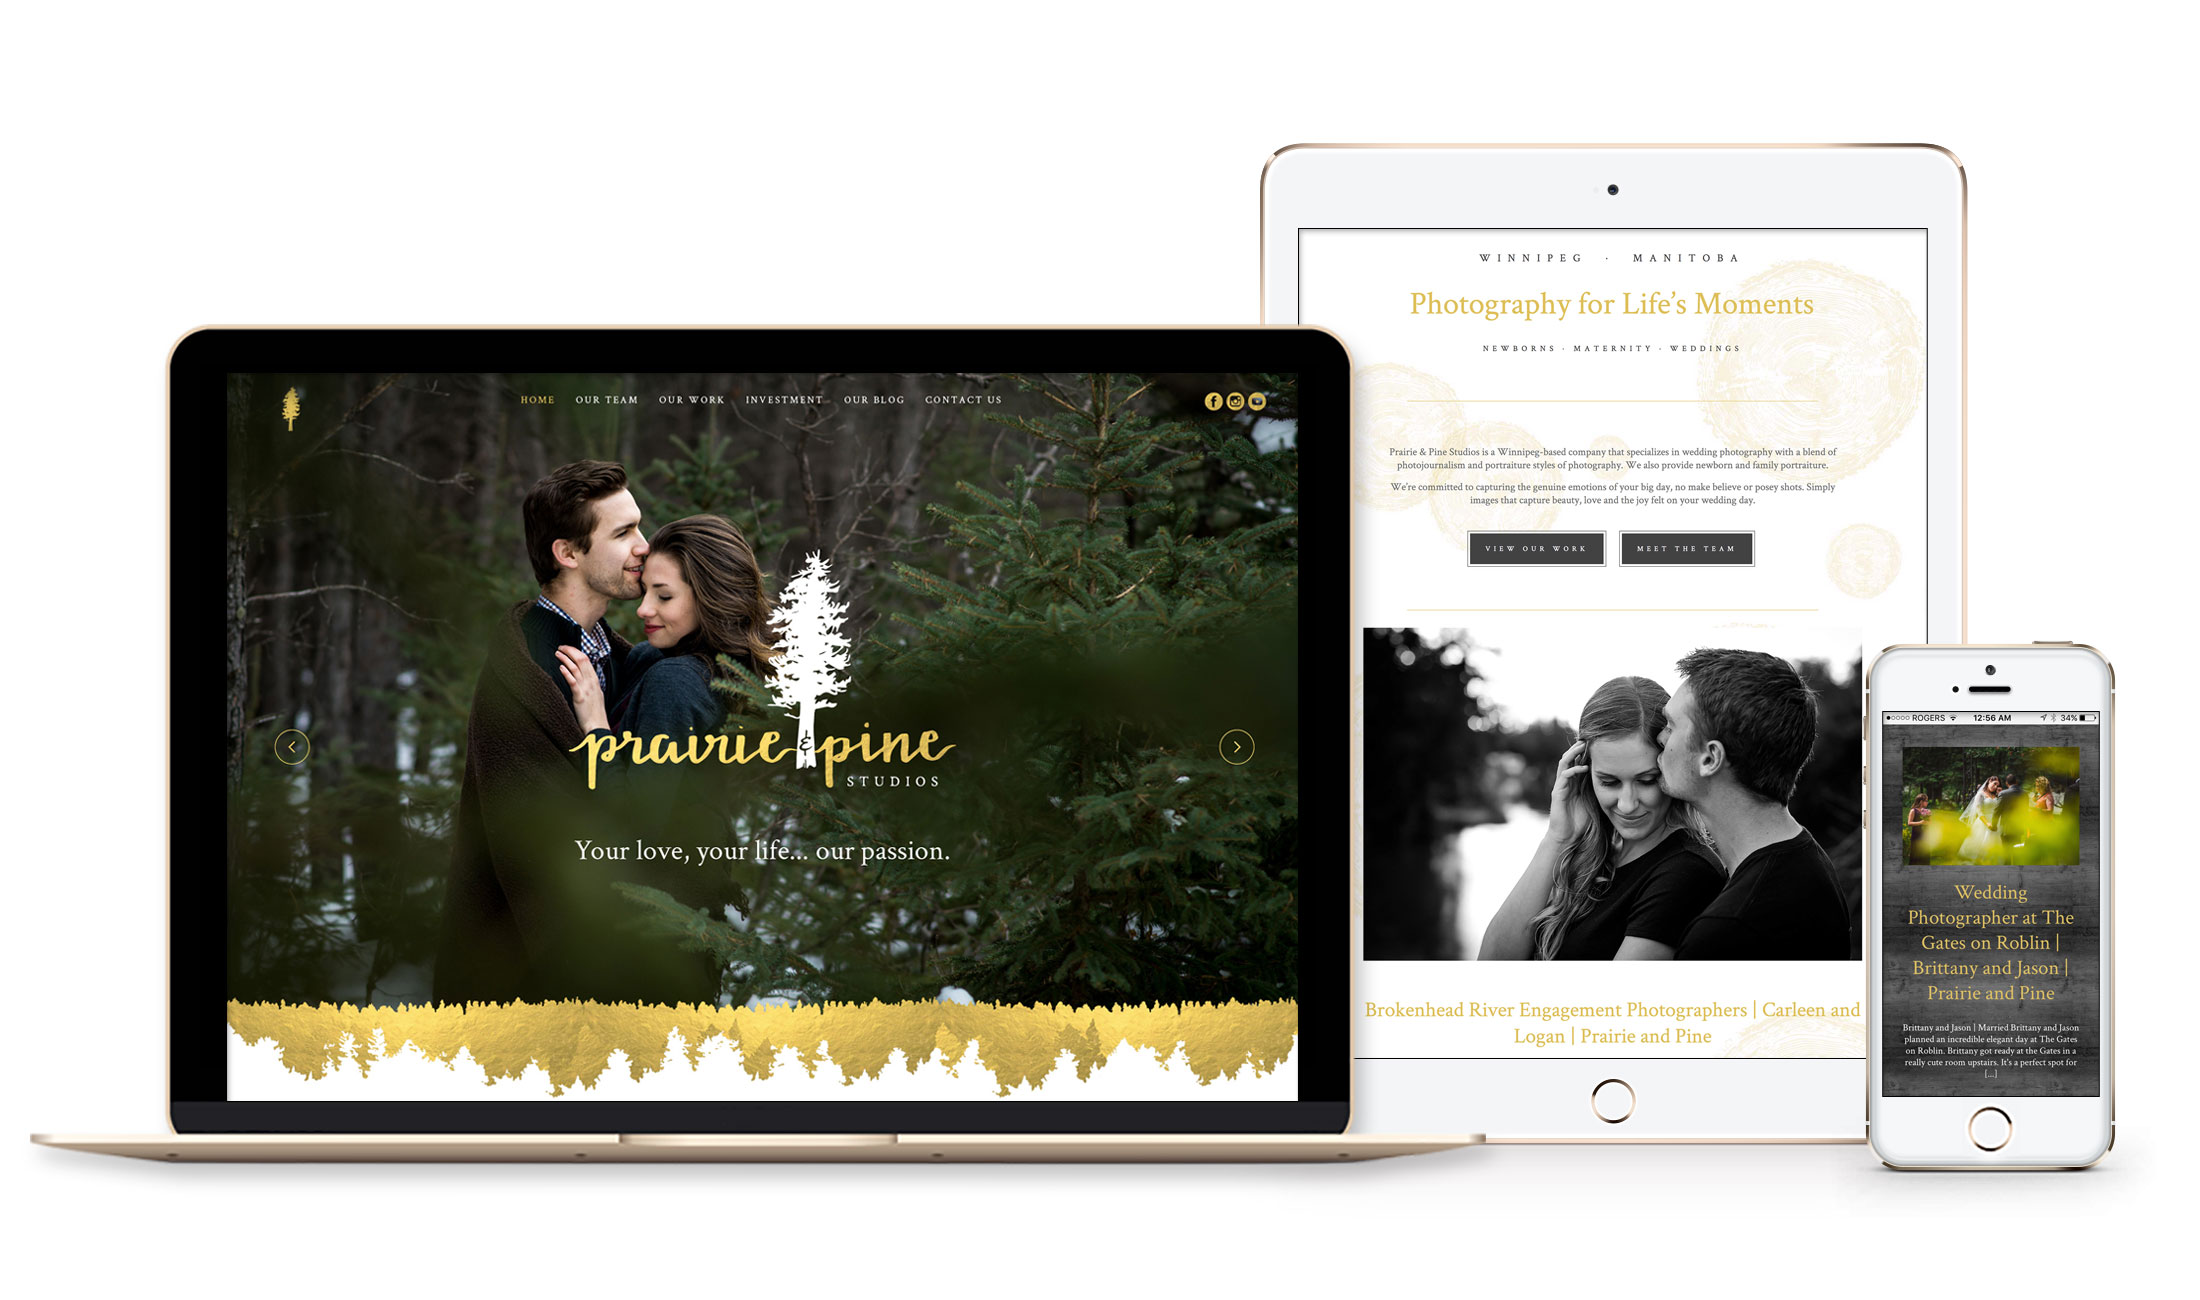 Winnipeg Web Design and Branding, Responsive Website Design for Prairie + Pine Photography in Winnipeg, Manitoba